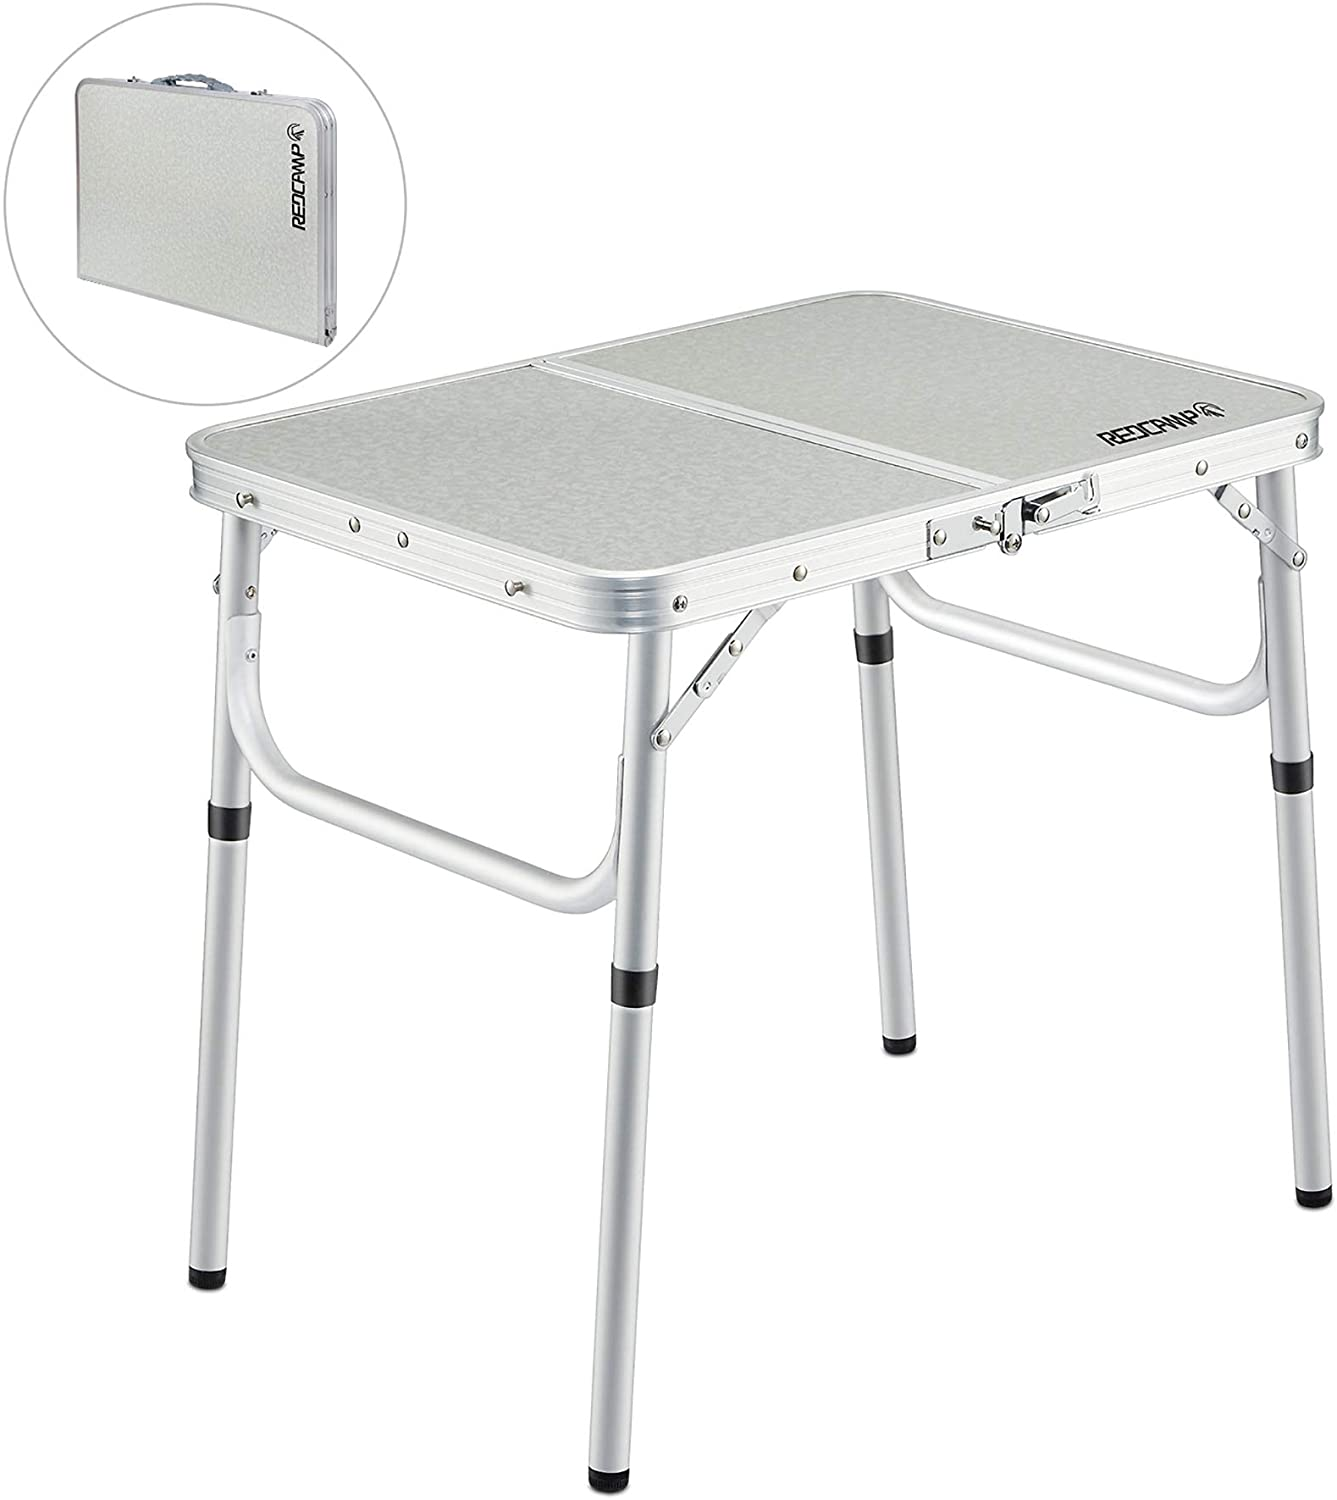 RedCamp Adjustable Camping Table